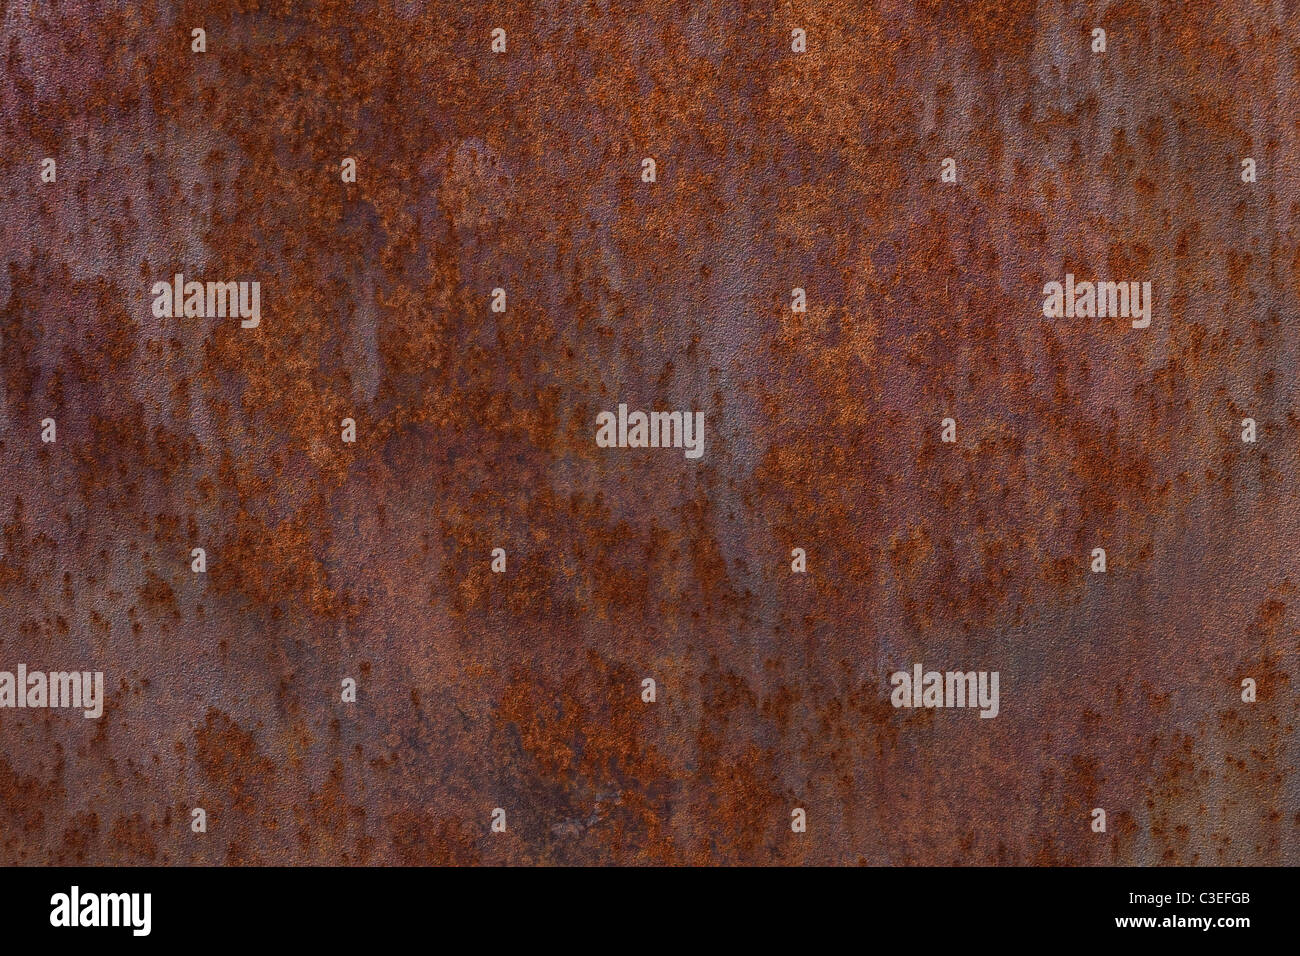 Rusty Iron for background - Stock Image